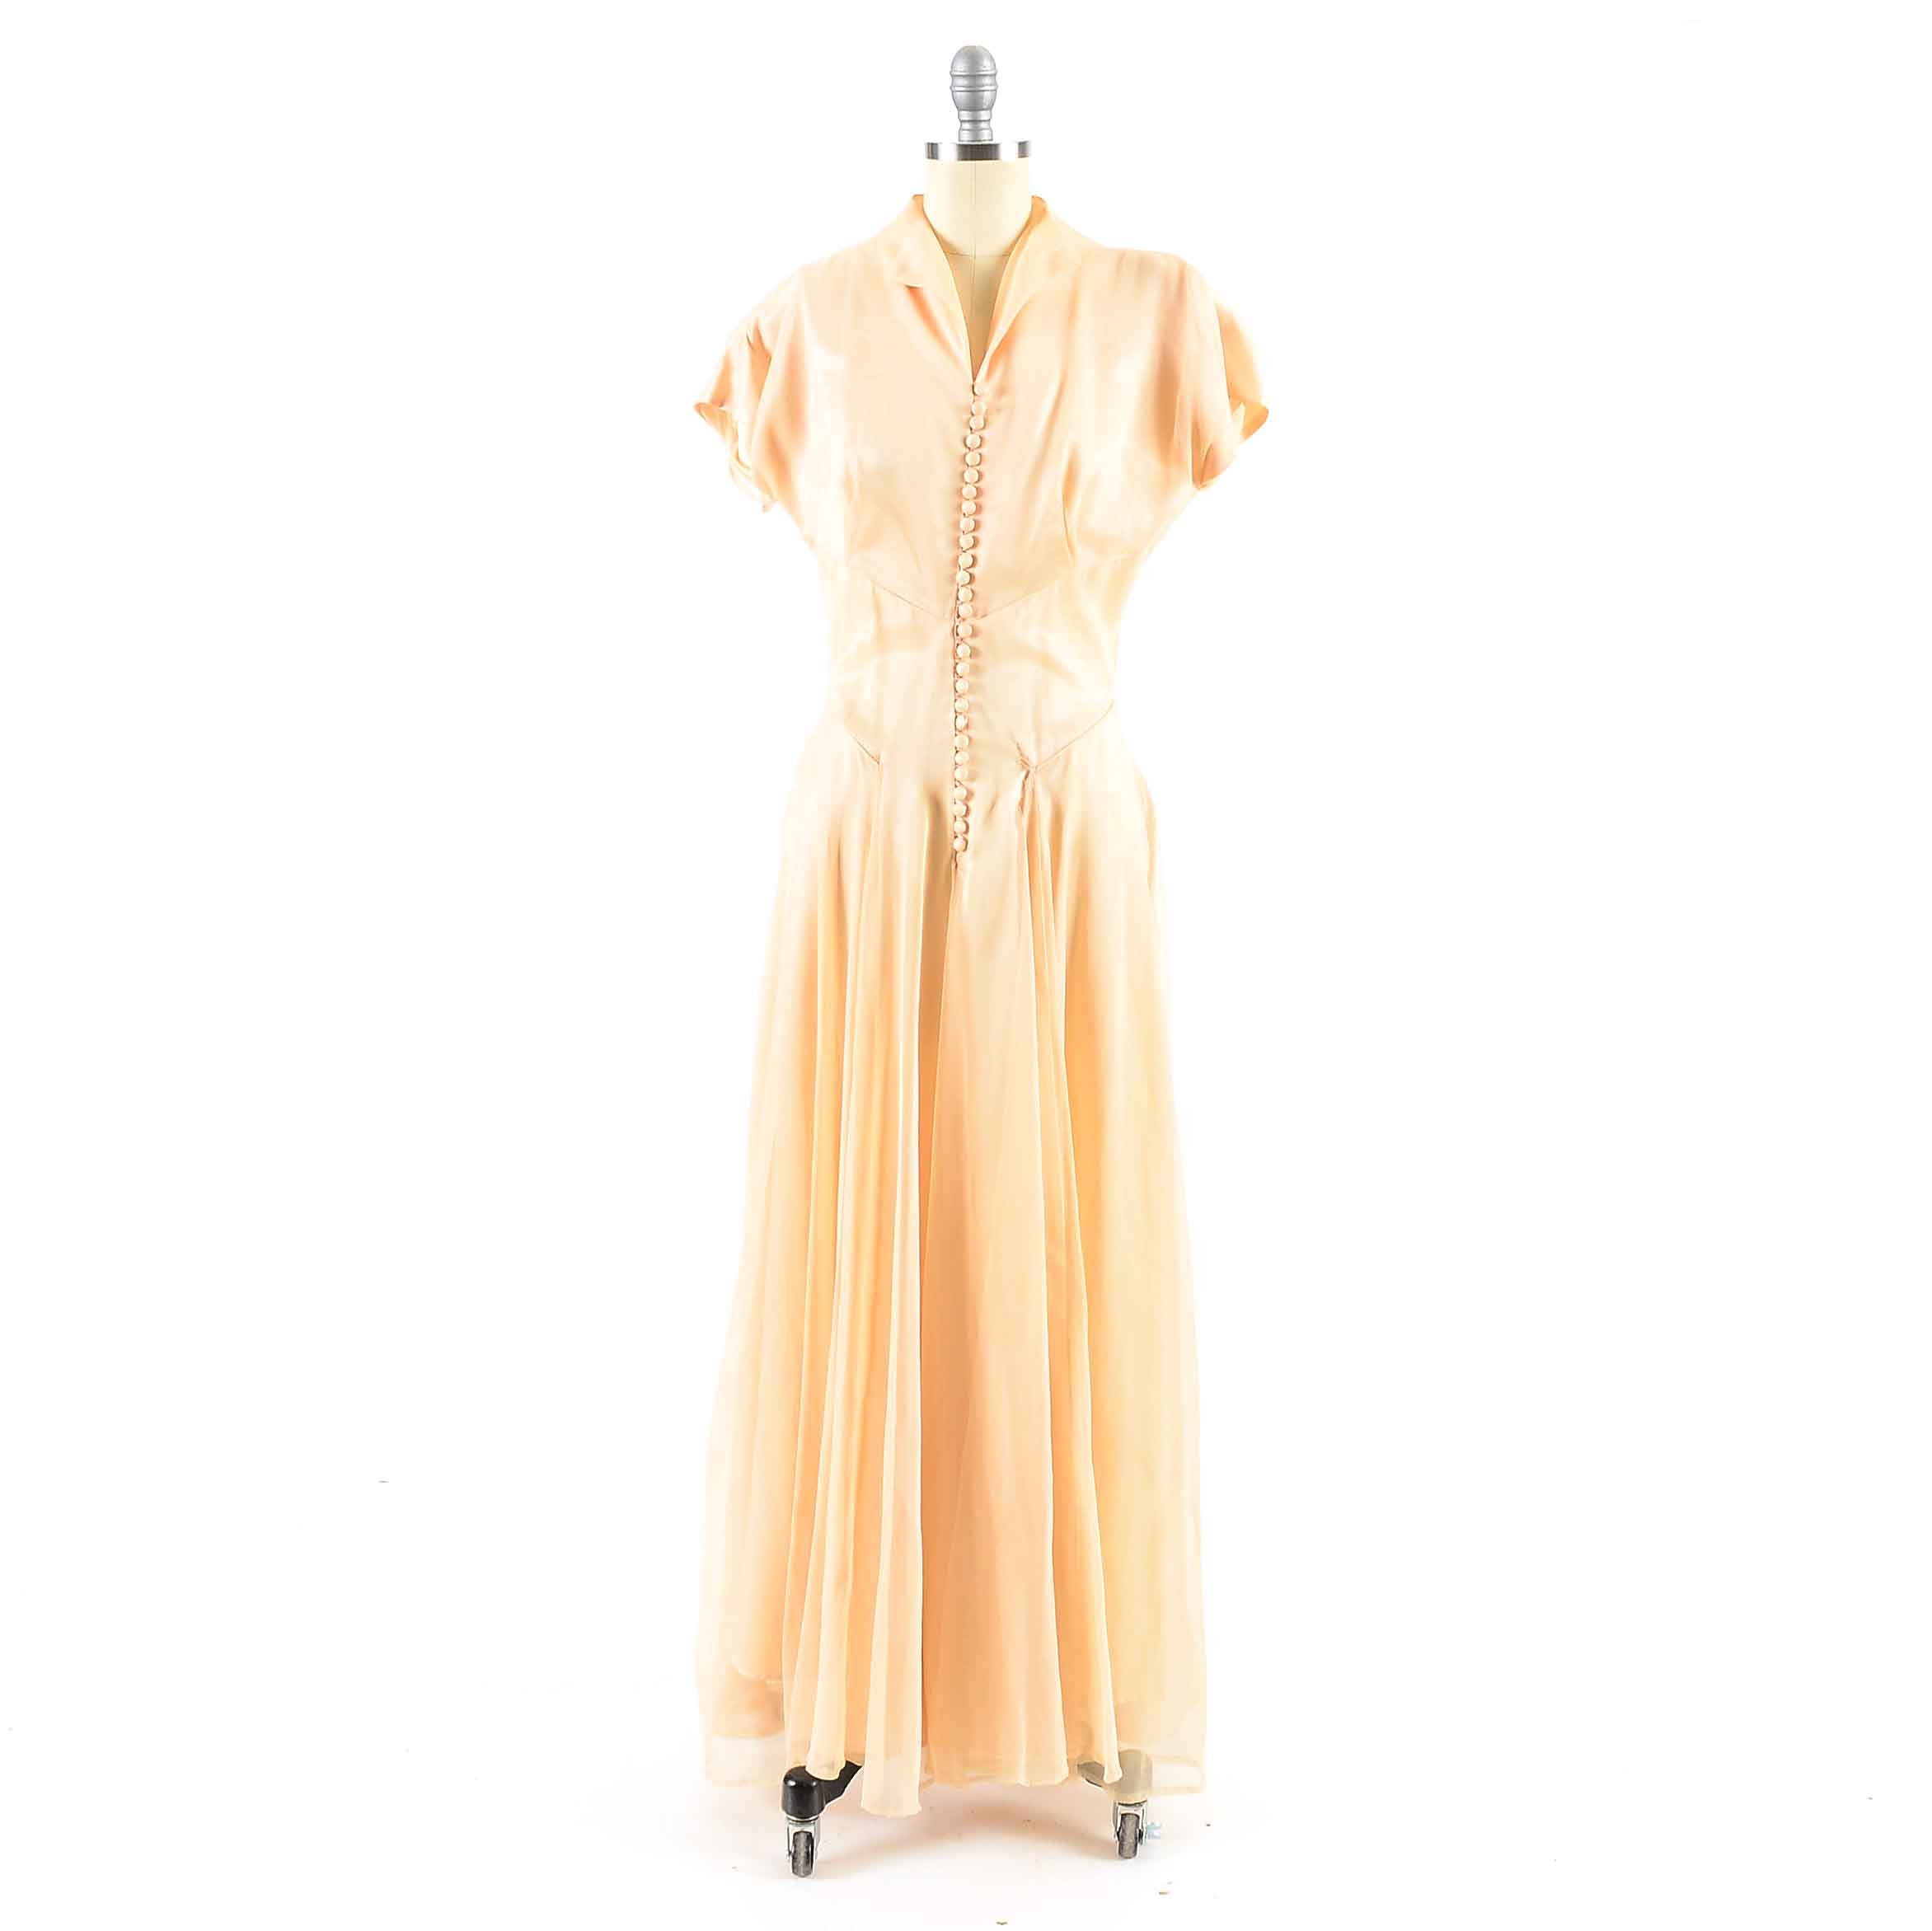 Vintage Evening Dress in Ivory